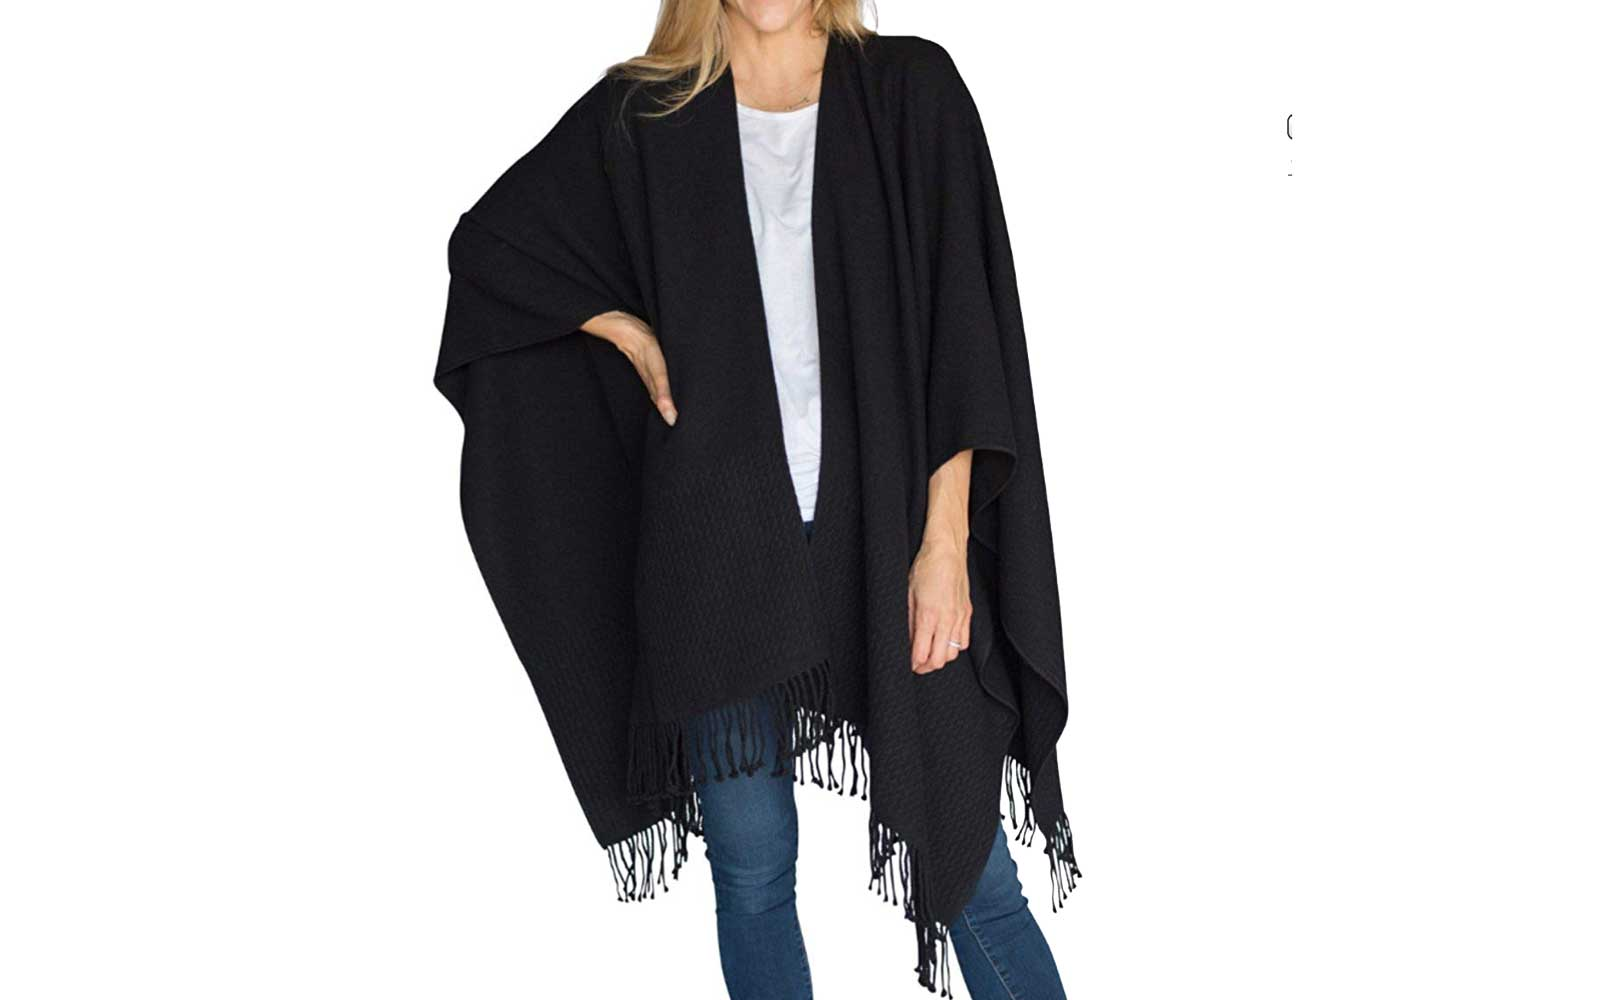 253f5a47d The Best Travel Wraps, Ponchos, and Scarves | Travel + Leisure